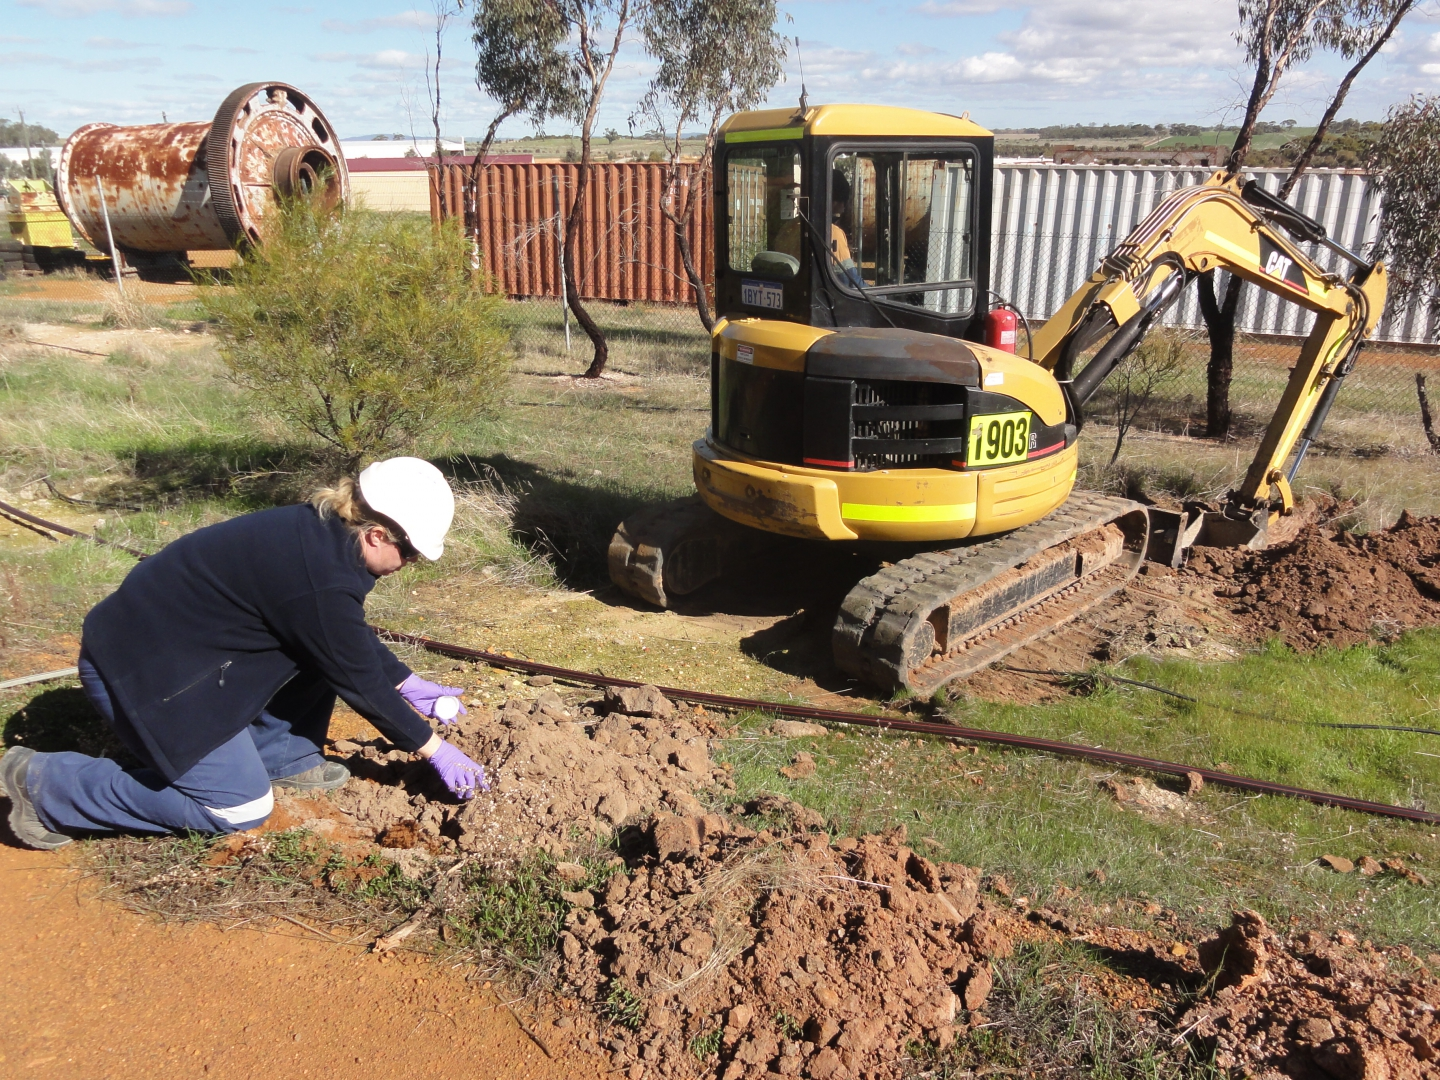 Contaminated Site Investigation & Remediation - Leeming Road, Grass Valley